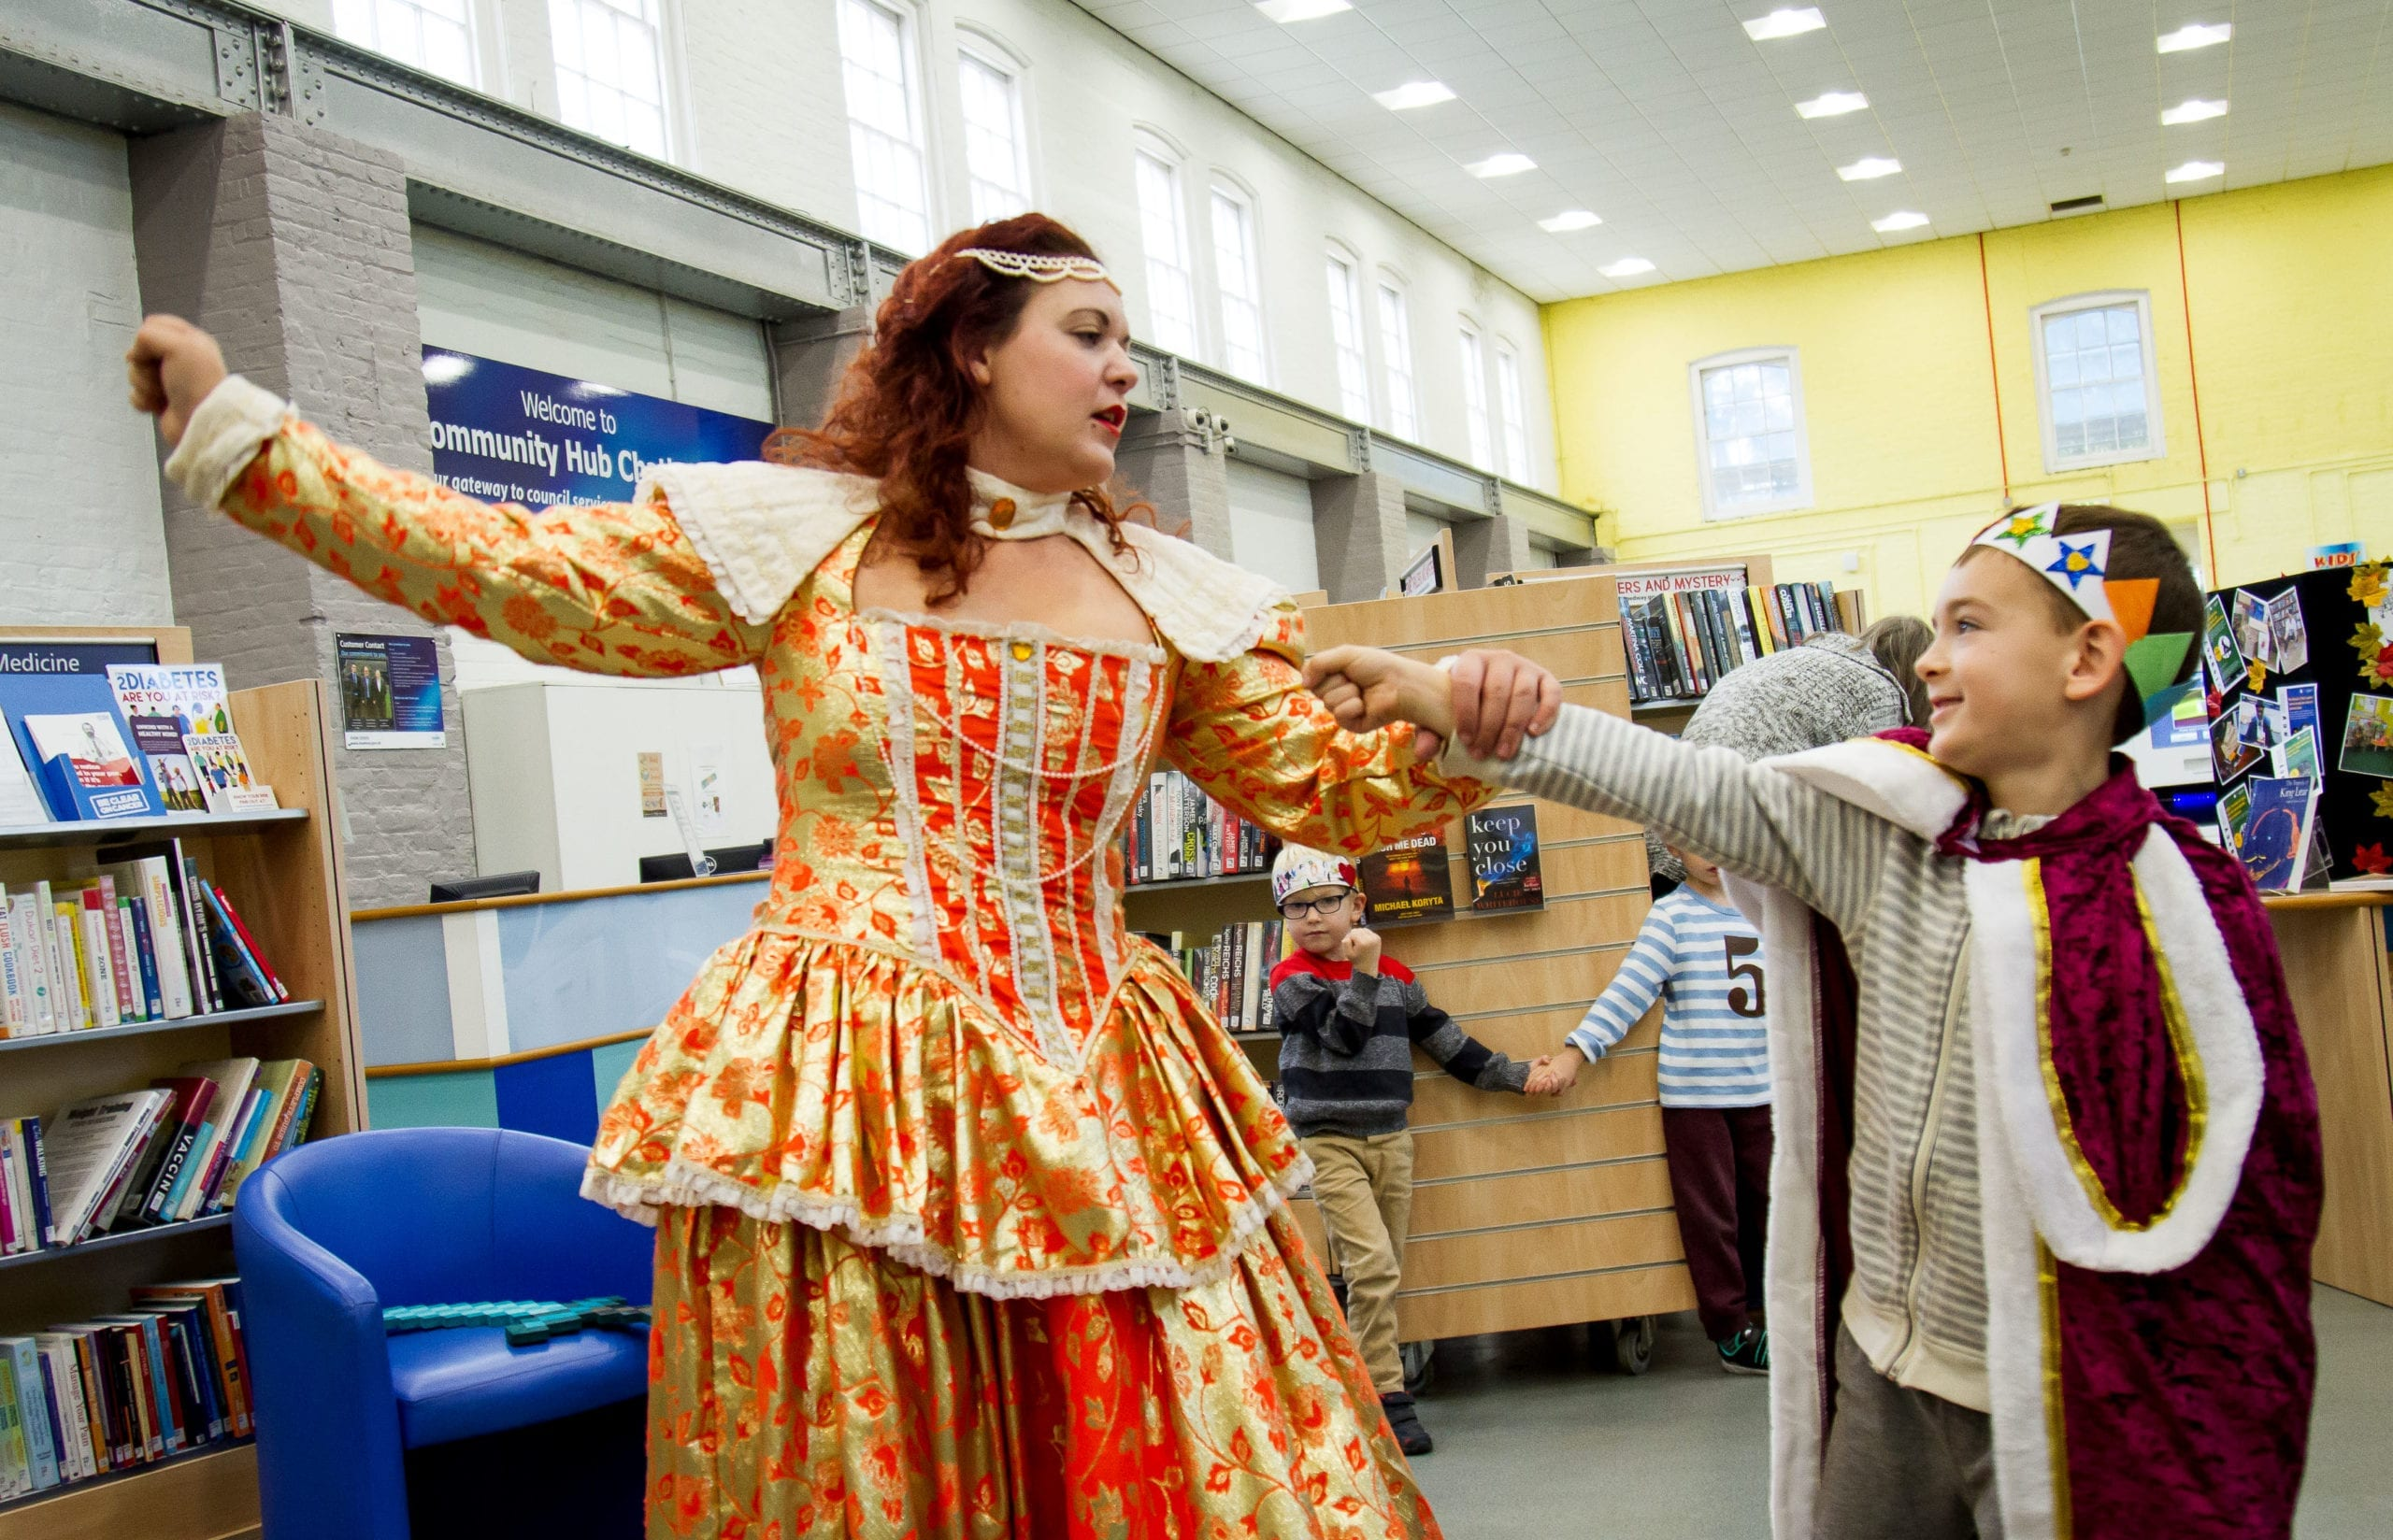 A woman and a young boy dressed up as a king and a queen in a library